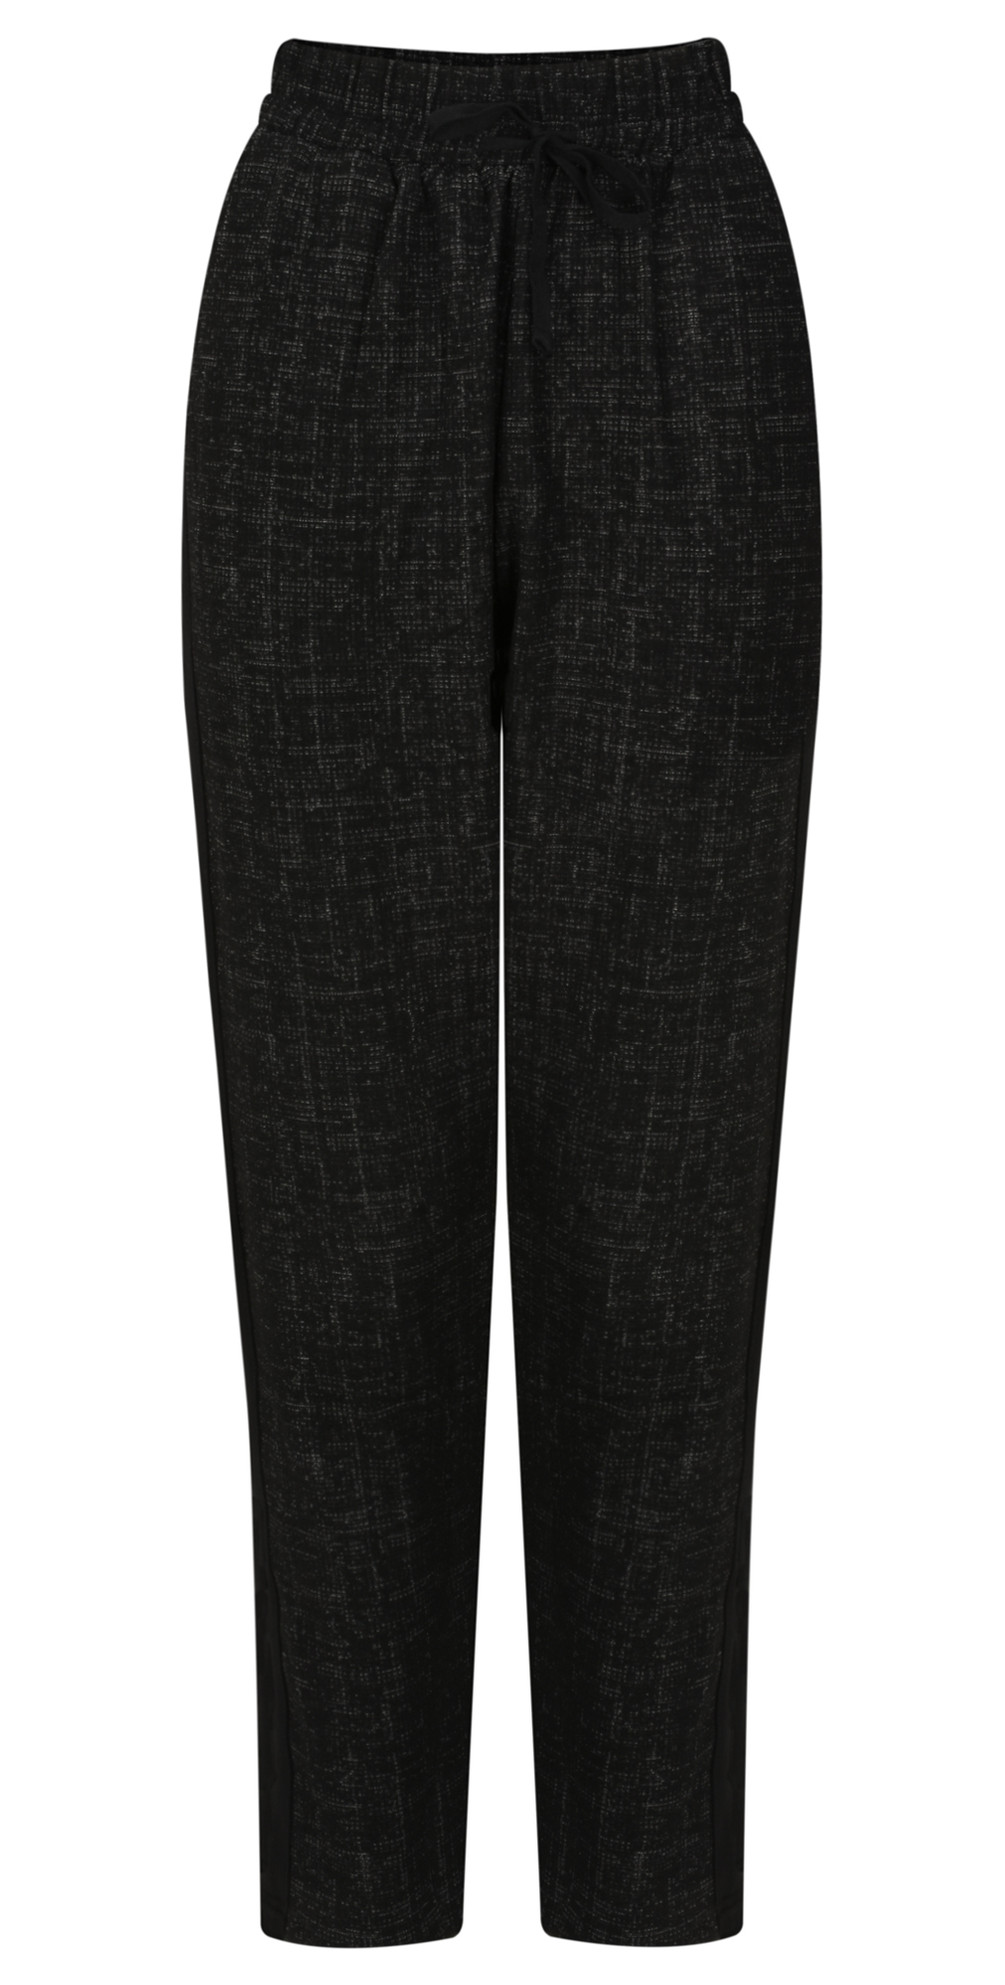 Persia Culotte Trousers main image